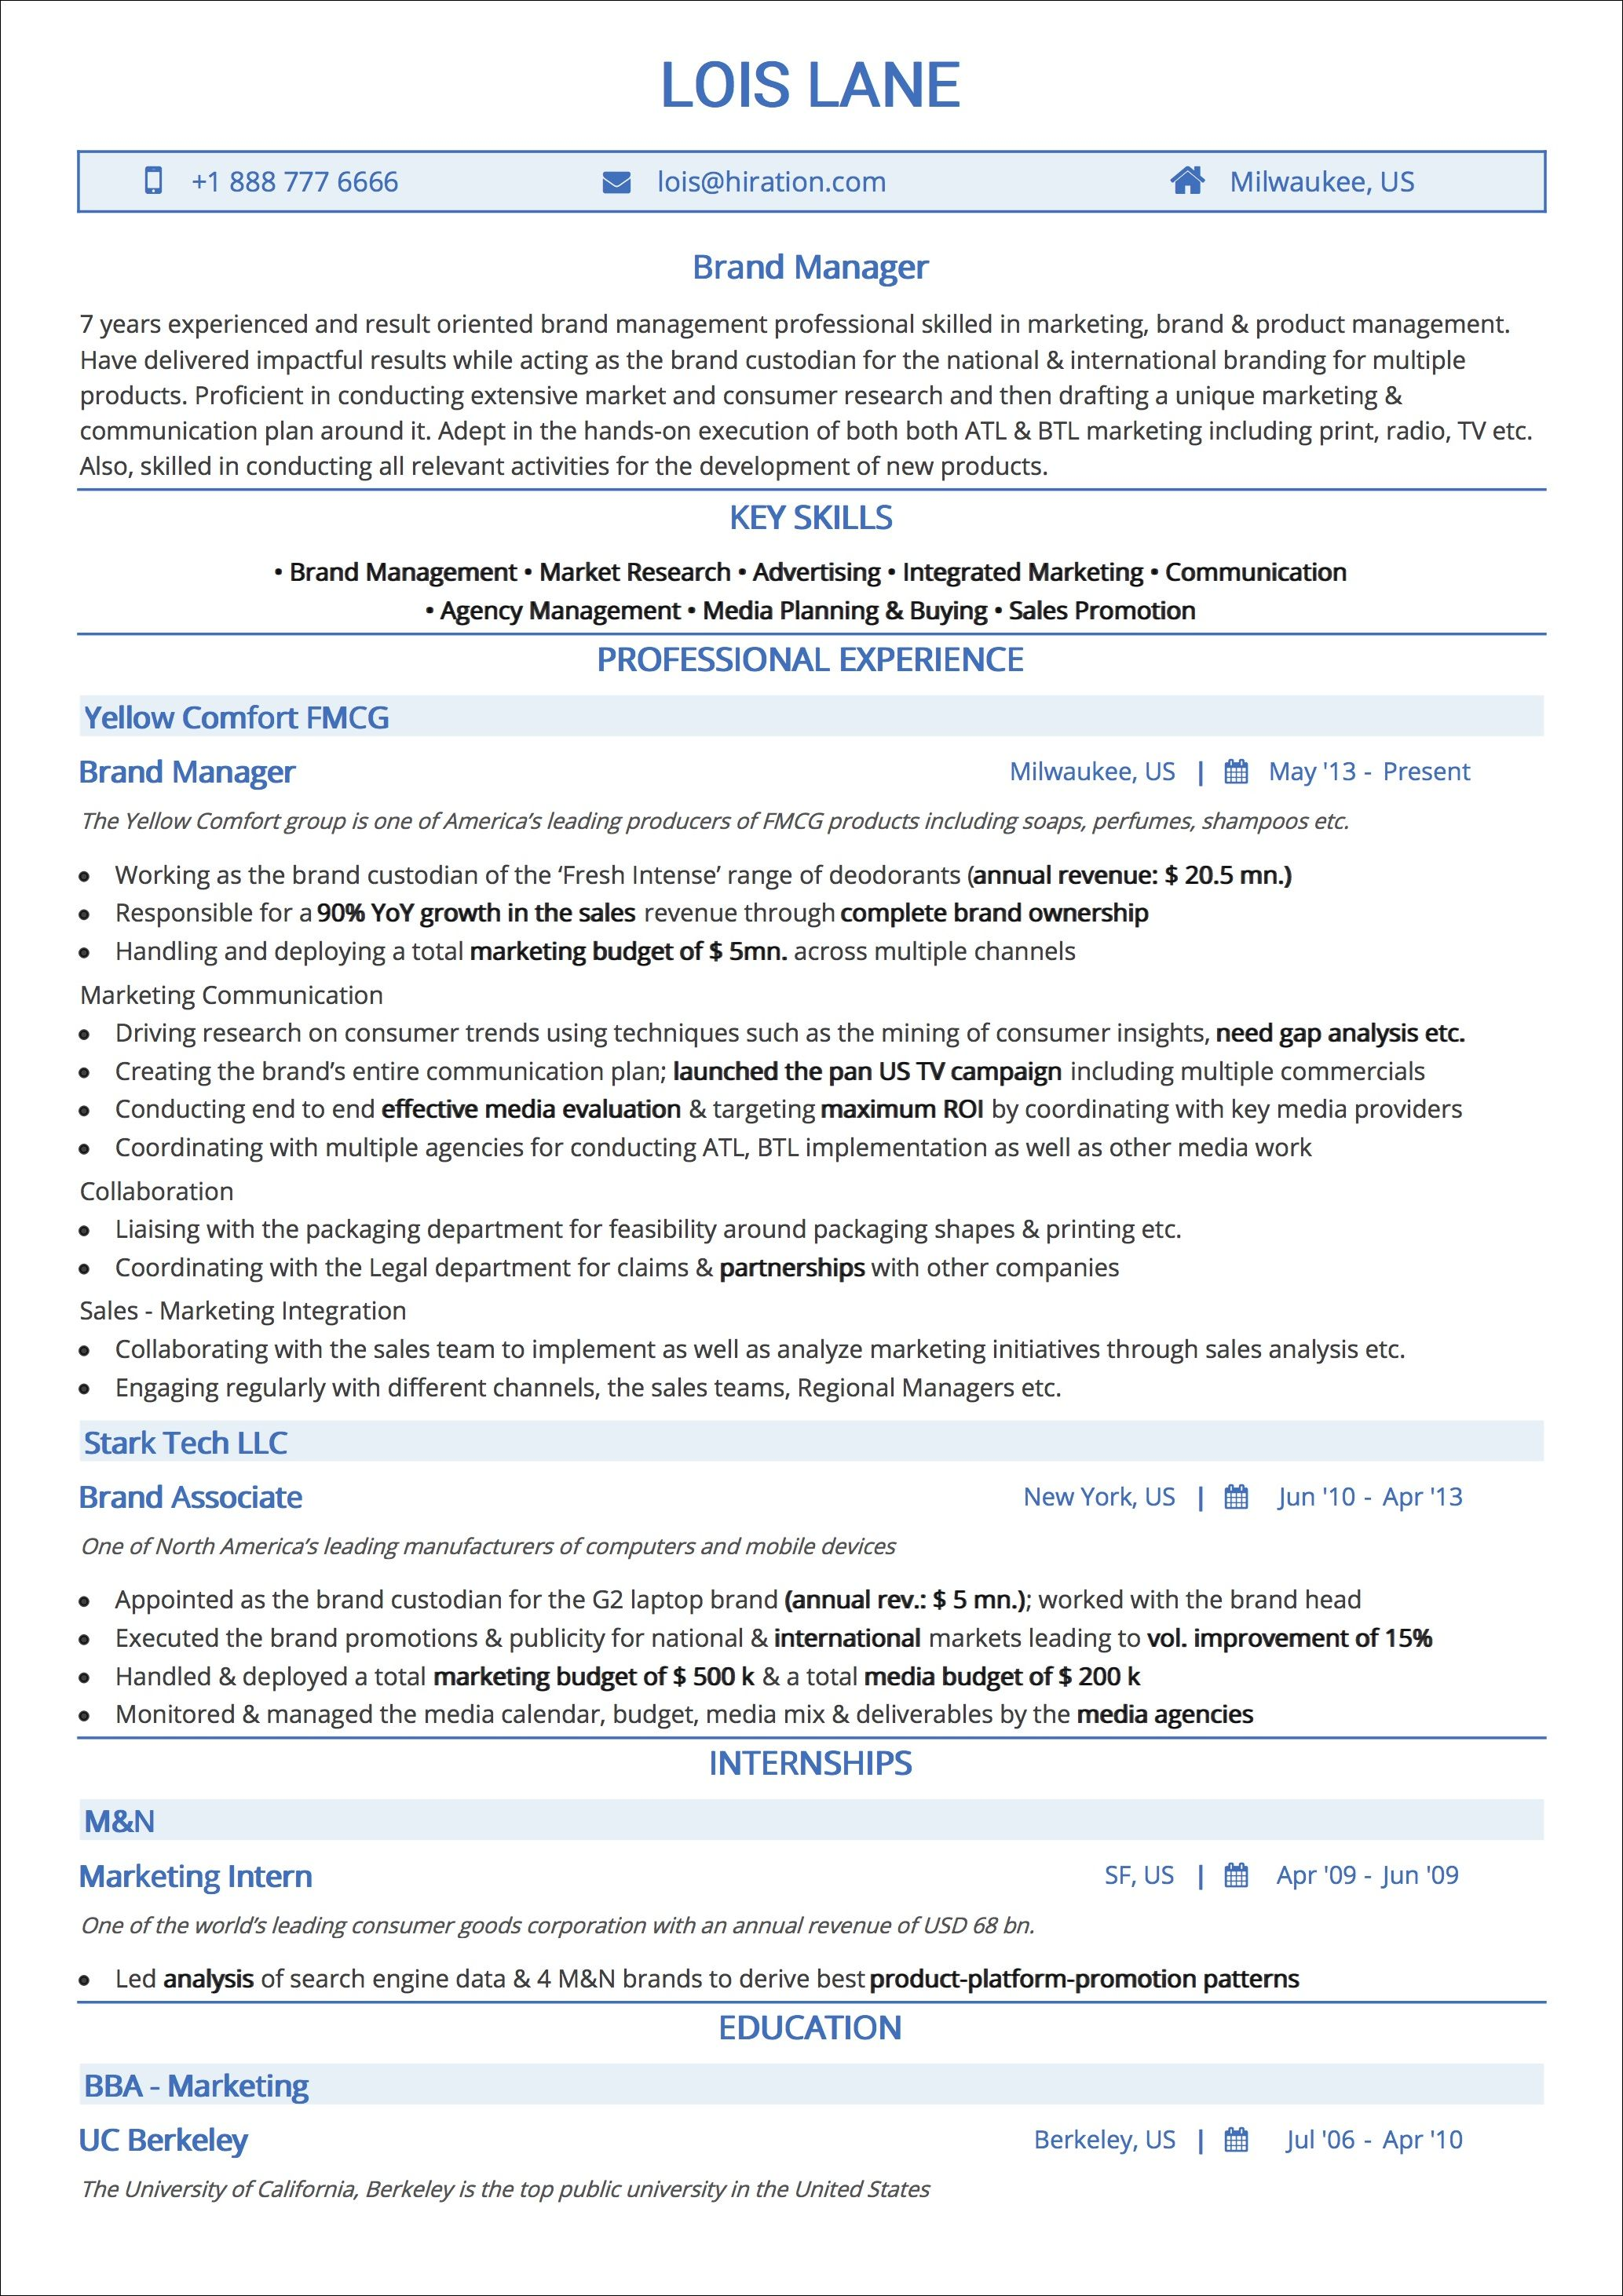 Resume Templates - The 2018 Guide to Choosing the Best Resume Template